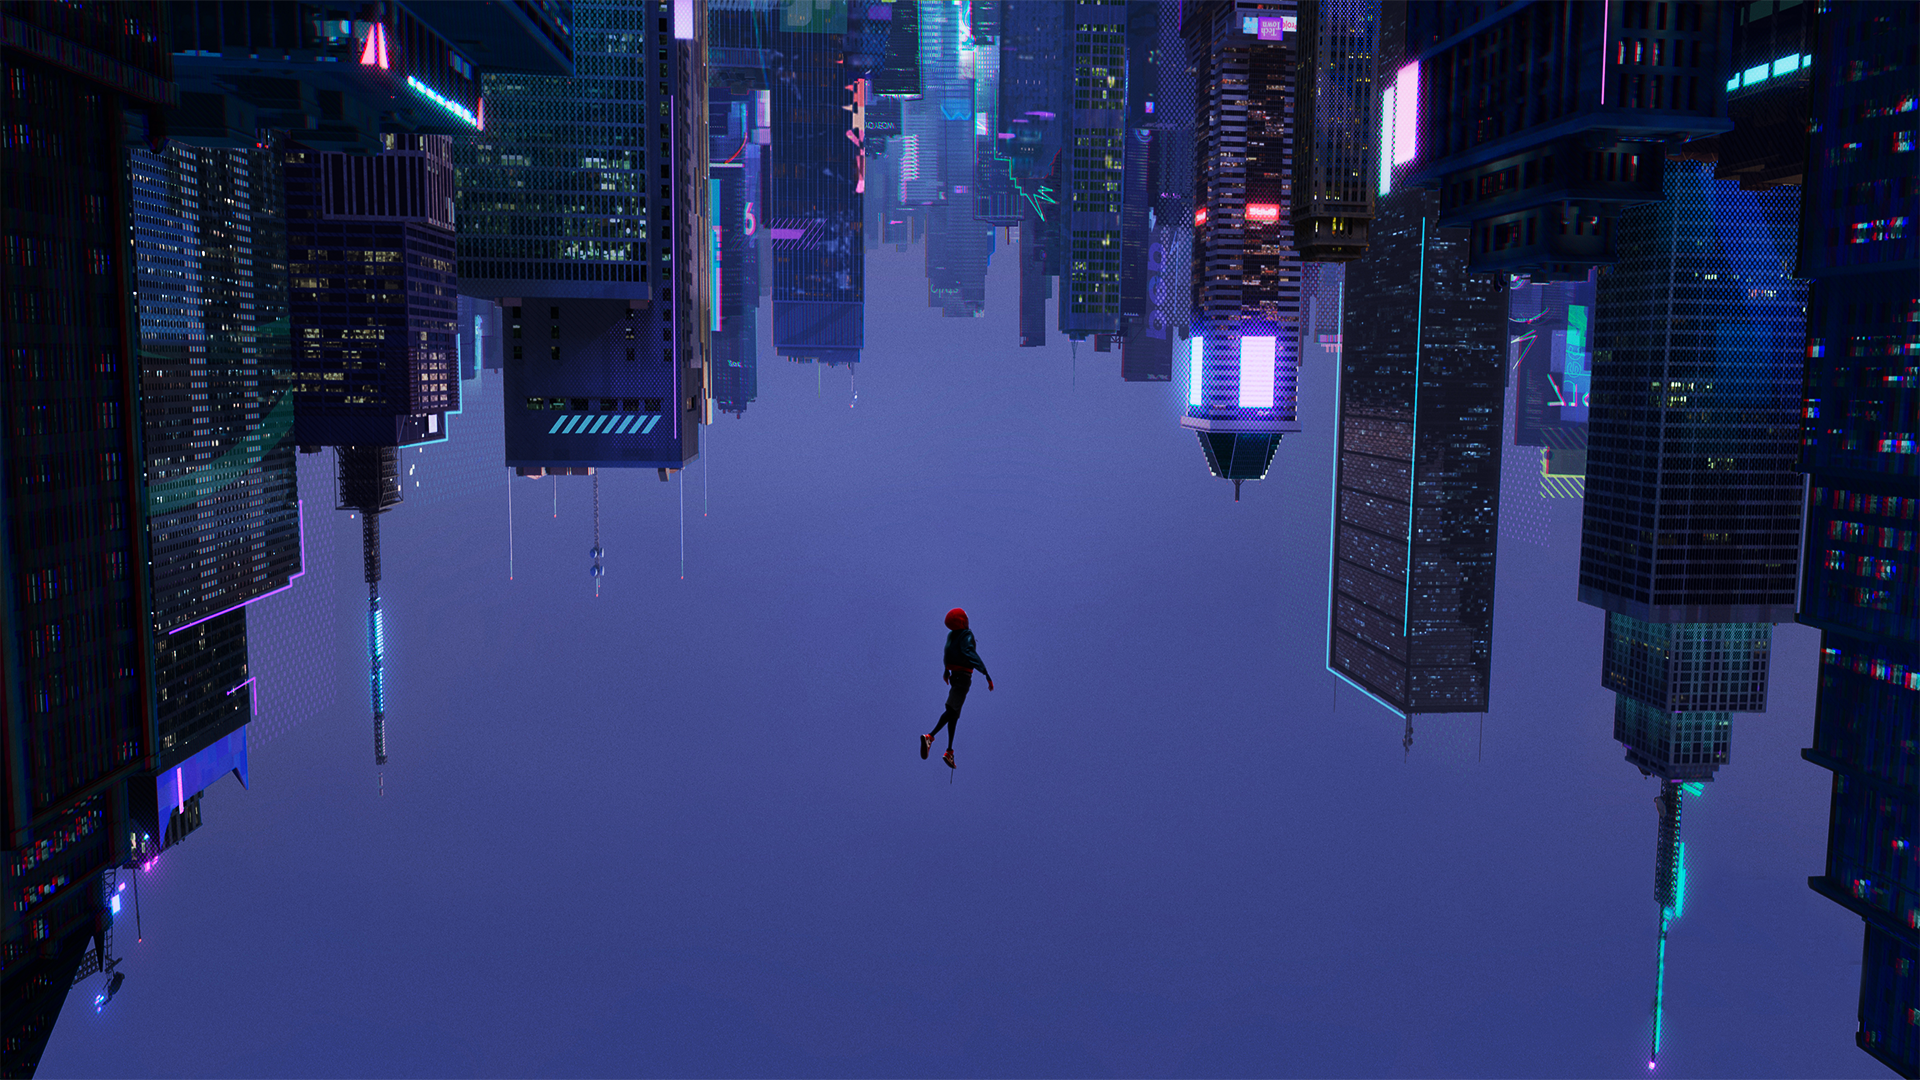 [19201080] Into the spiderverse wallpaper Hdwallpaper